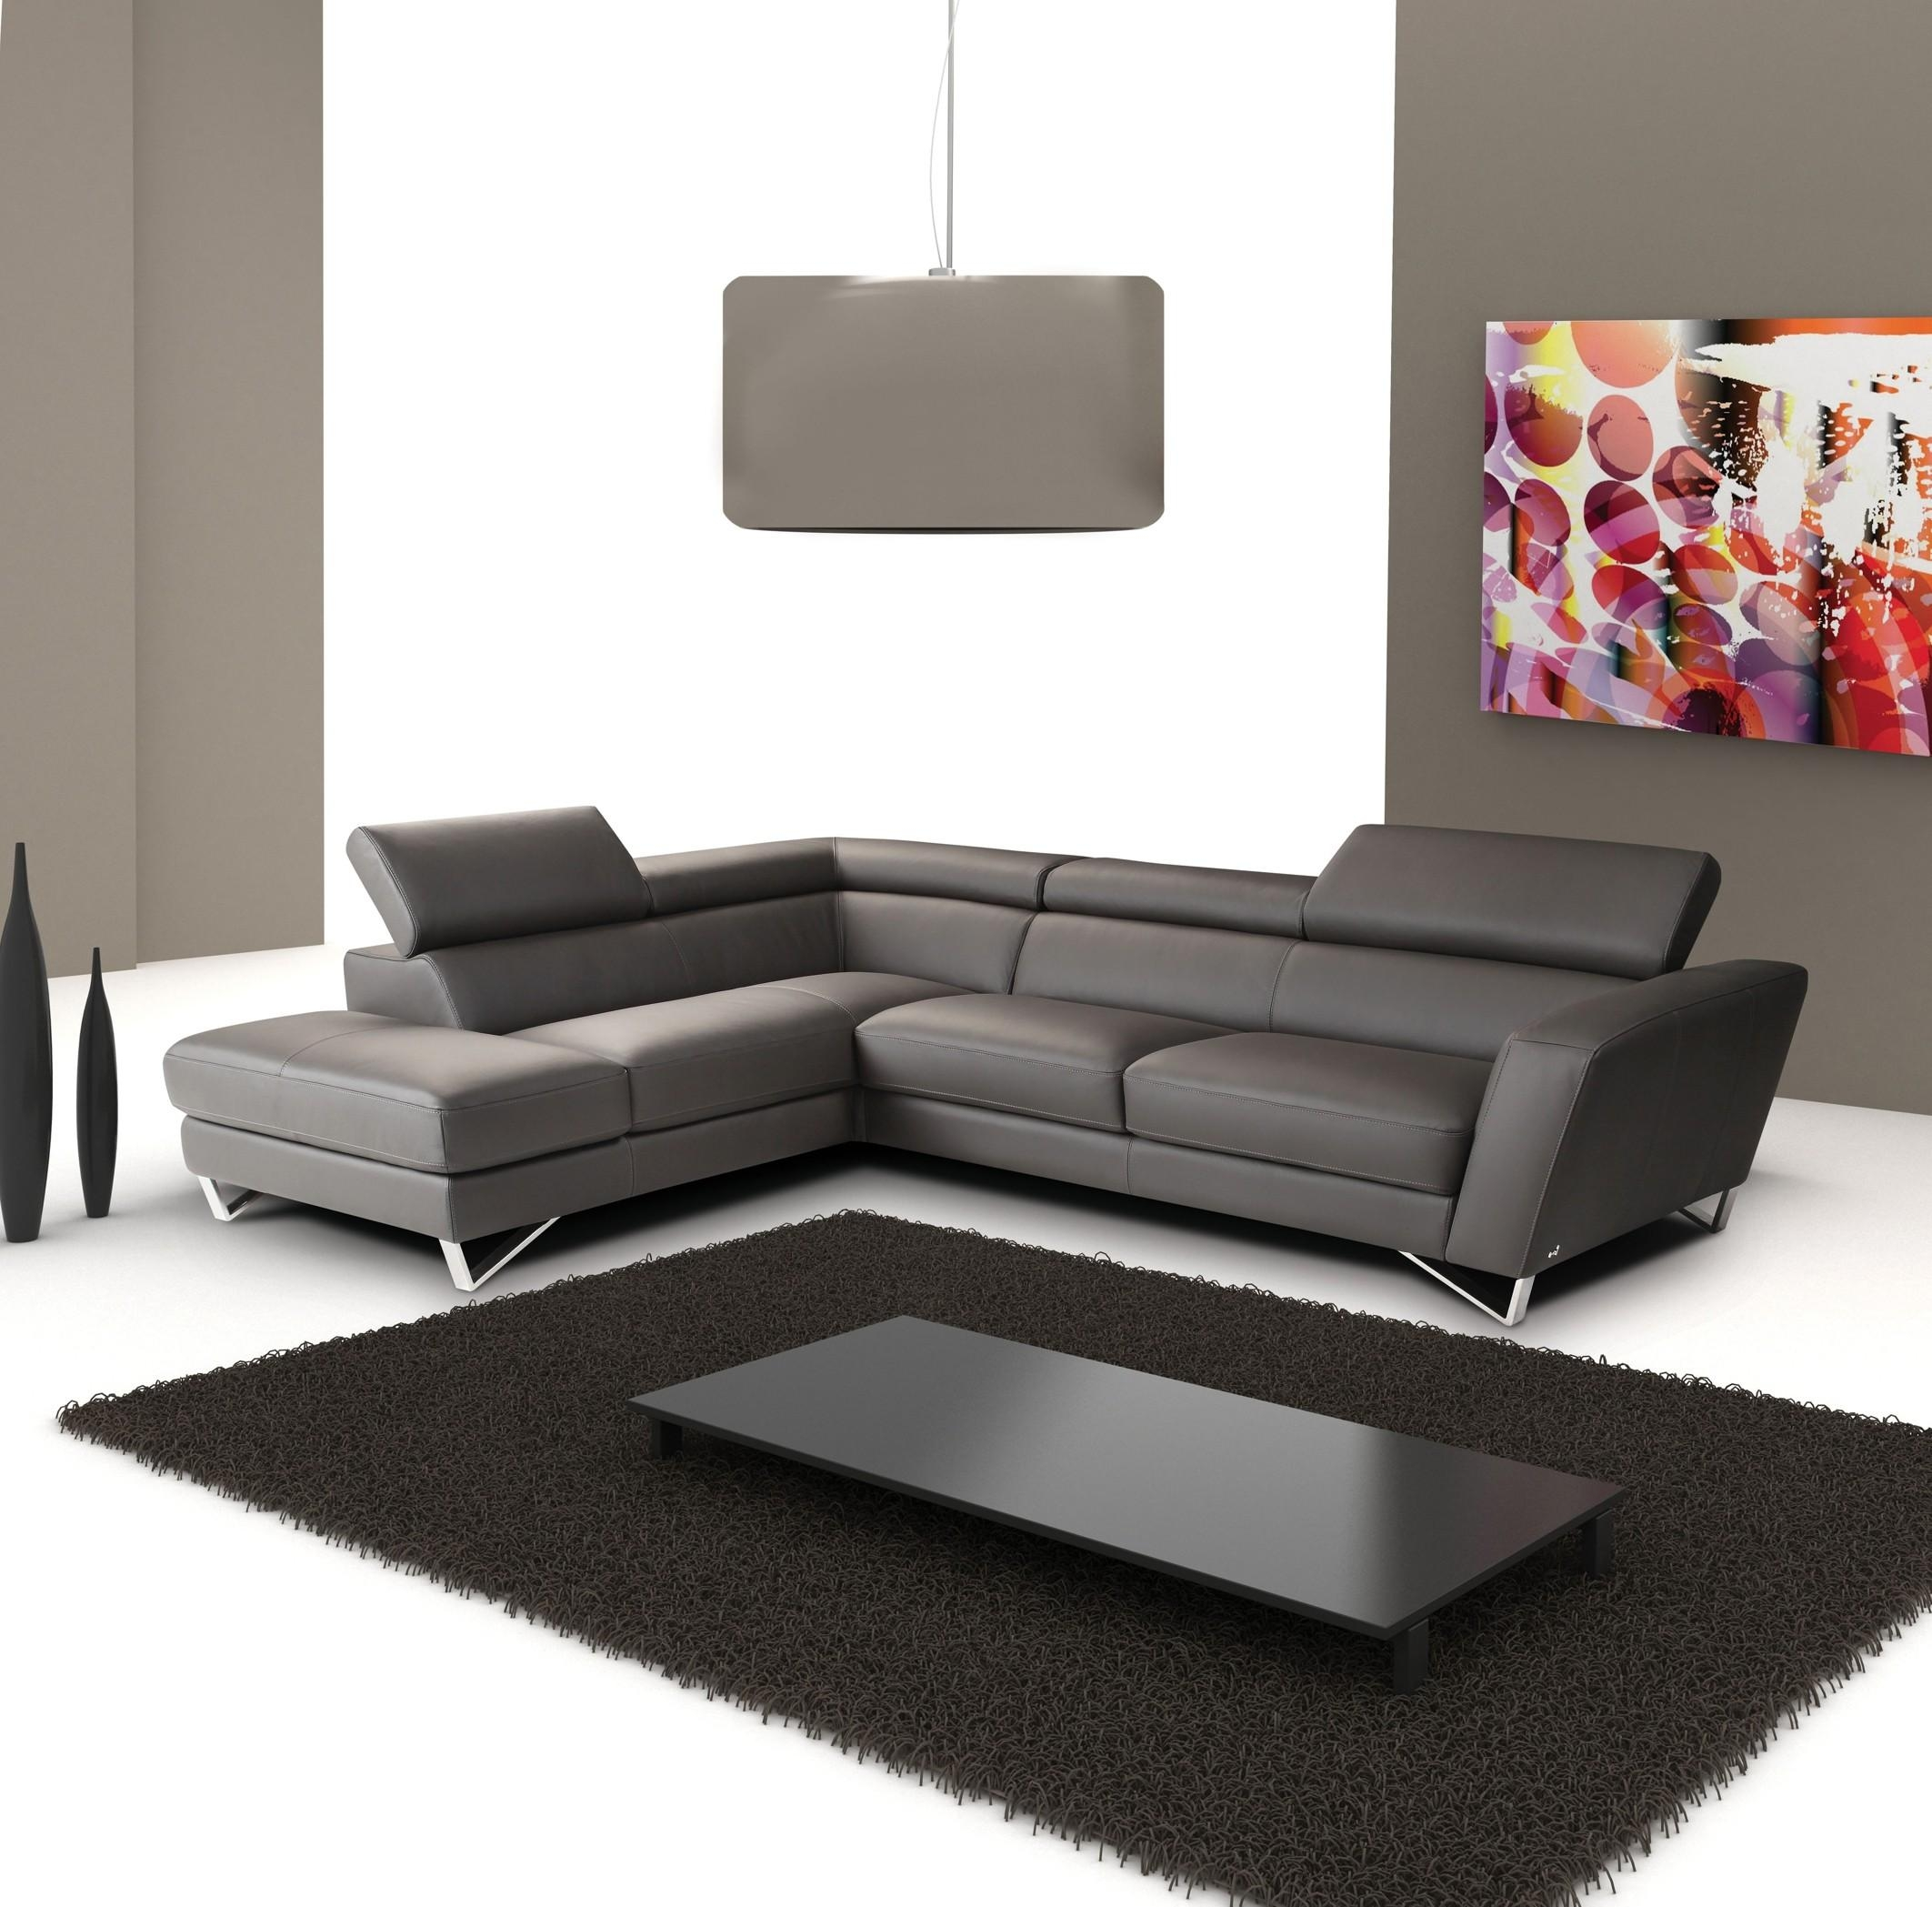 Italian Sofa Chairs 20 Best Ideas Contemporary Sofas And Chairs Sofa Ideas